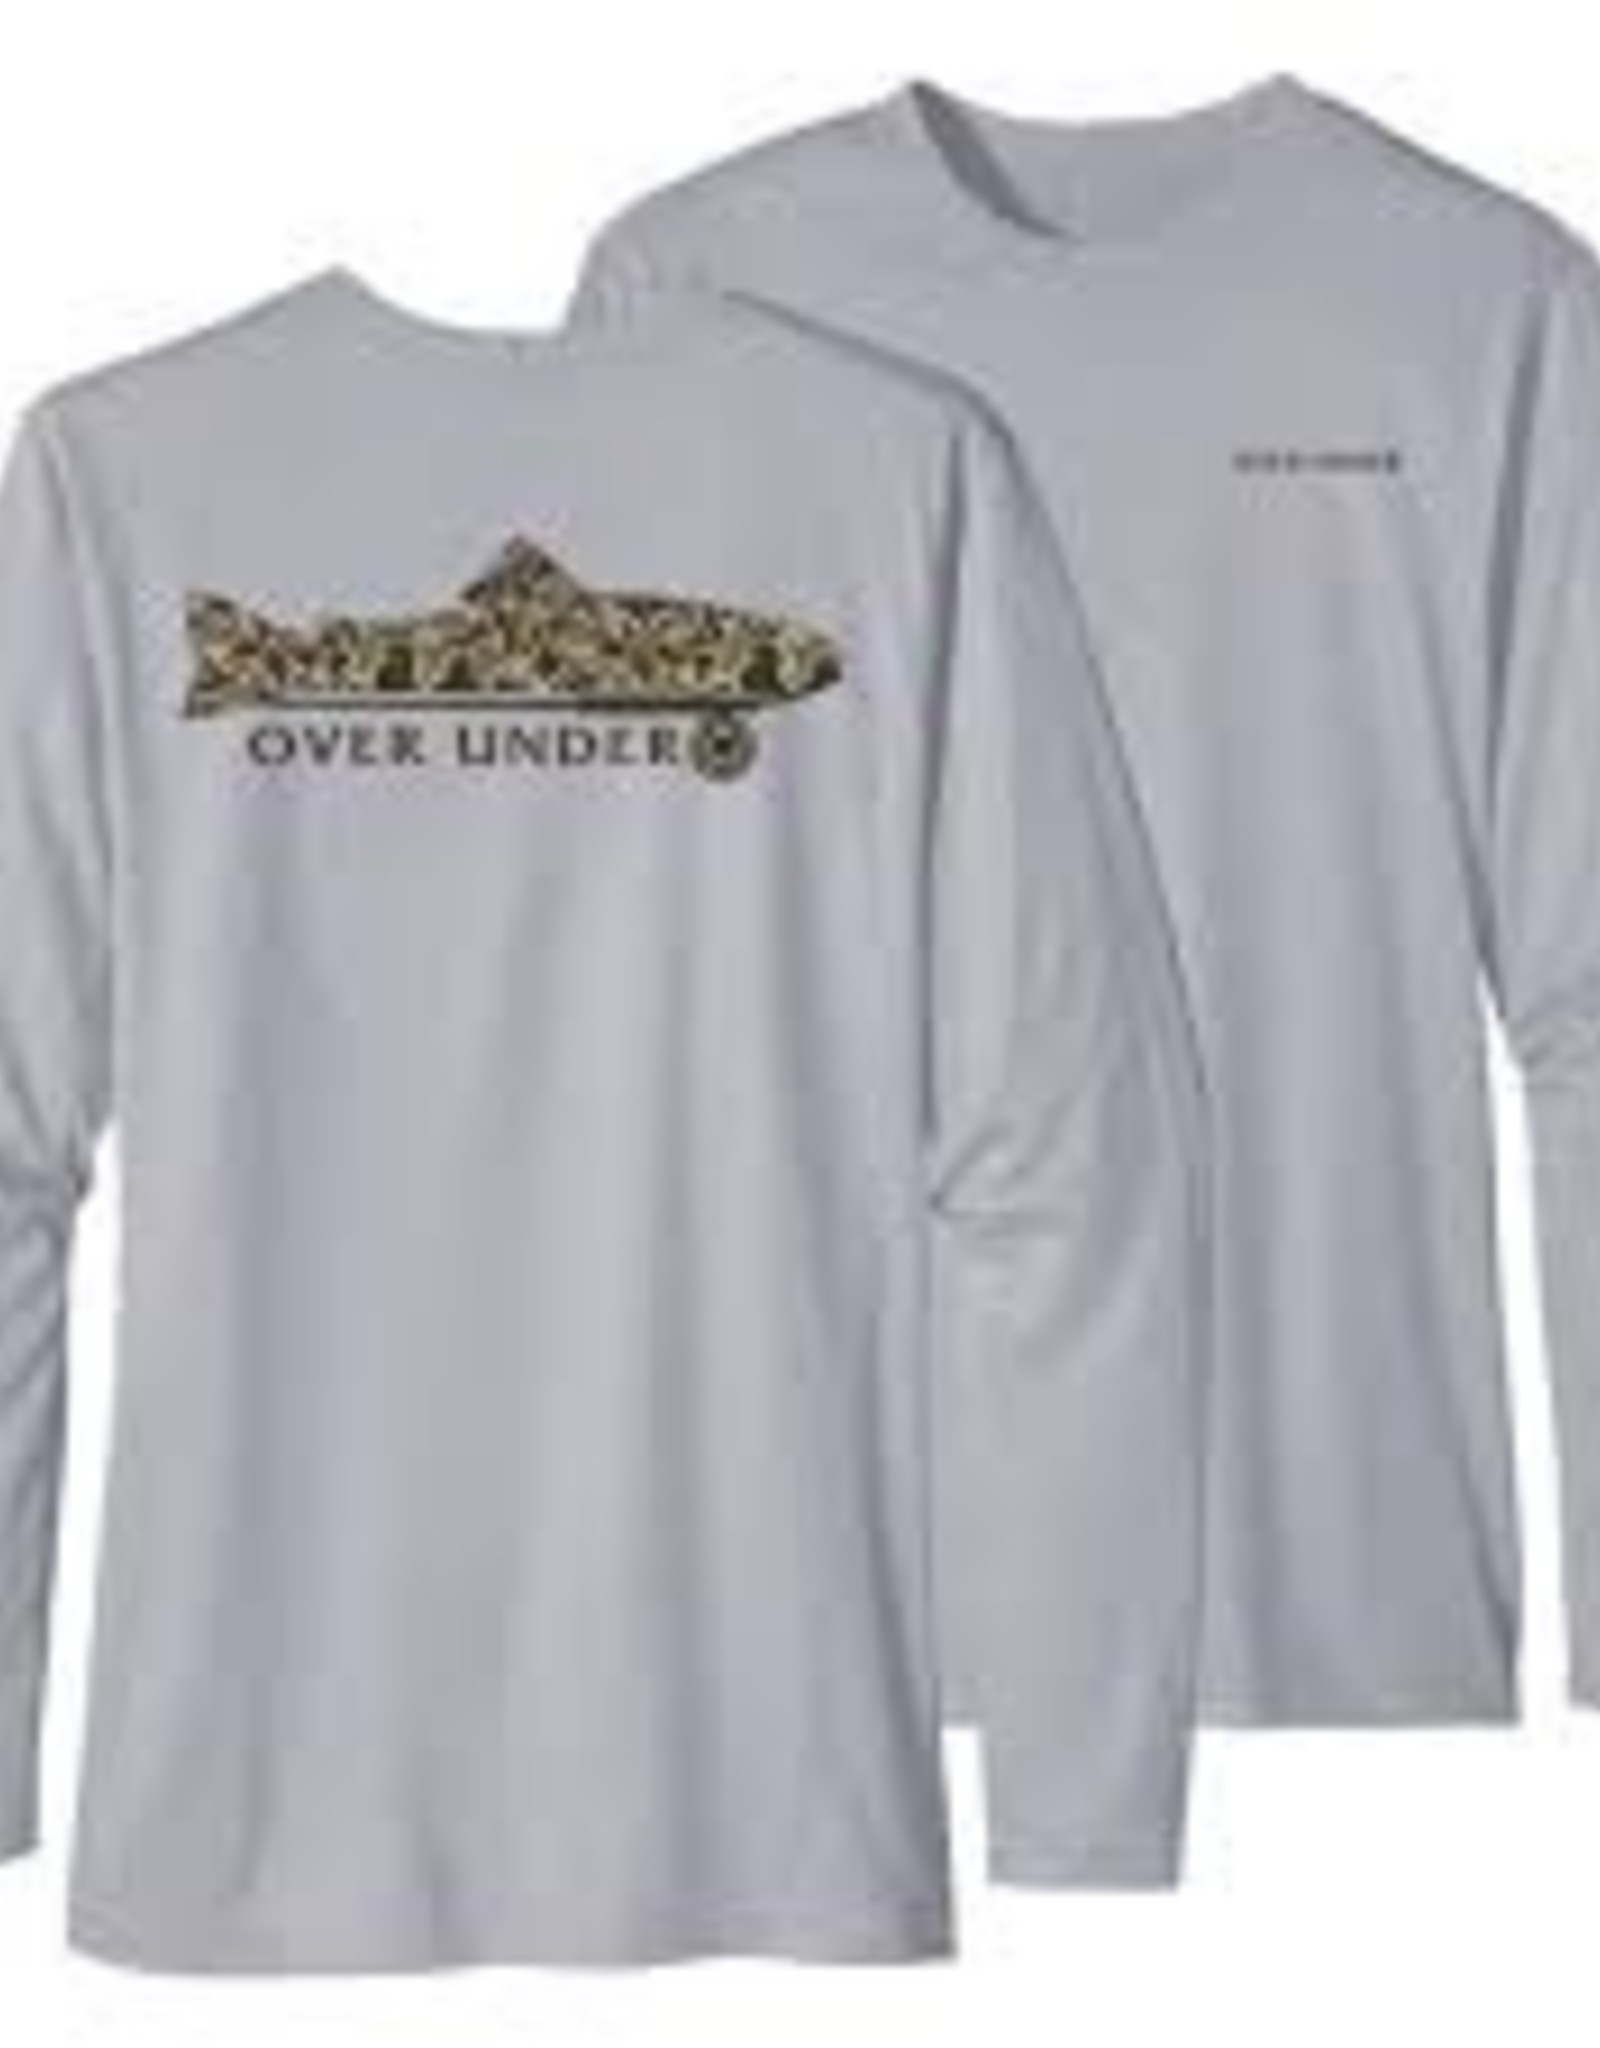 Over Under L/S Tidal Tech Old School